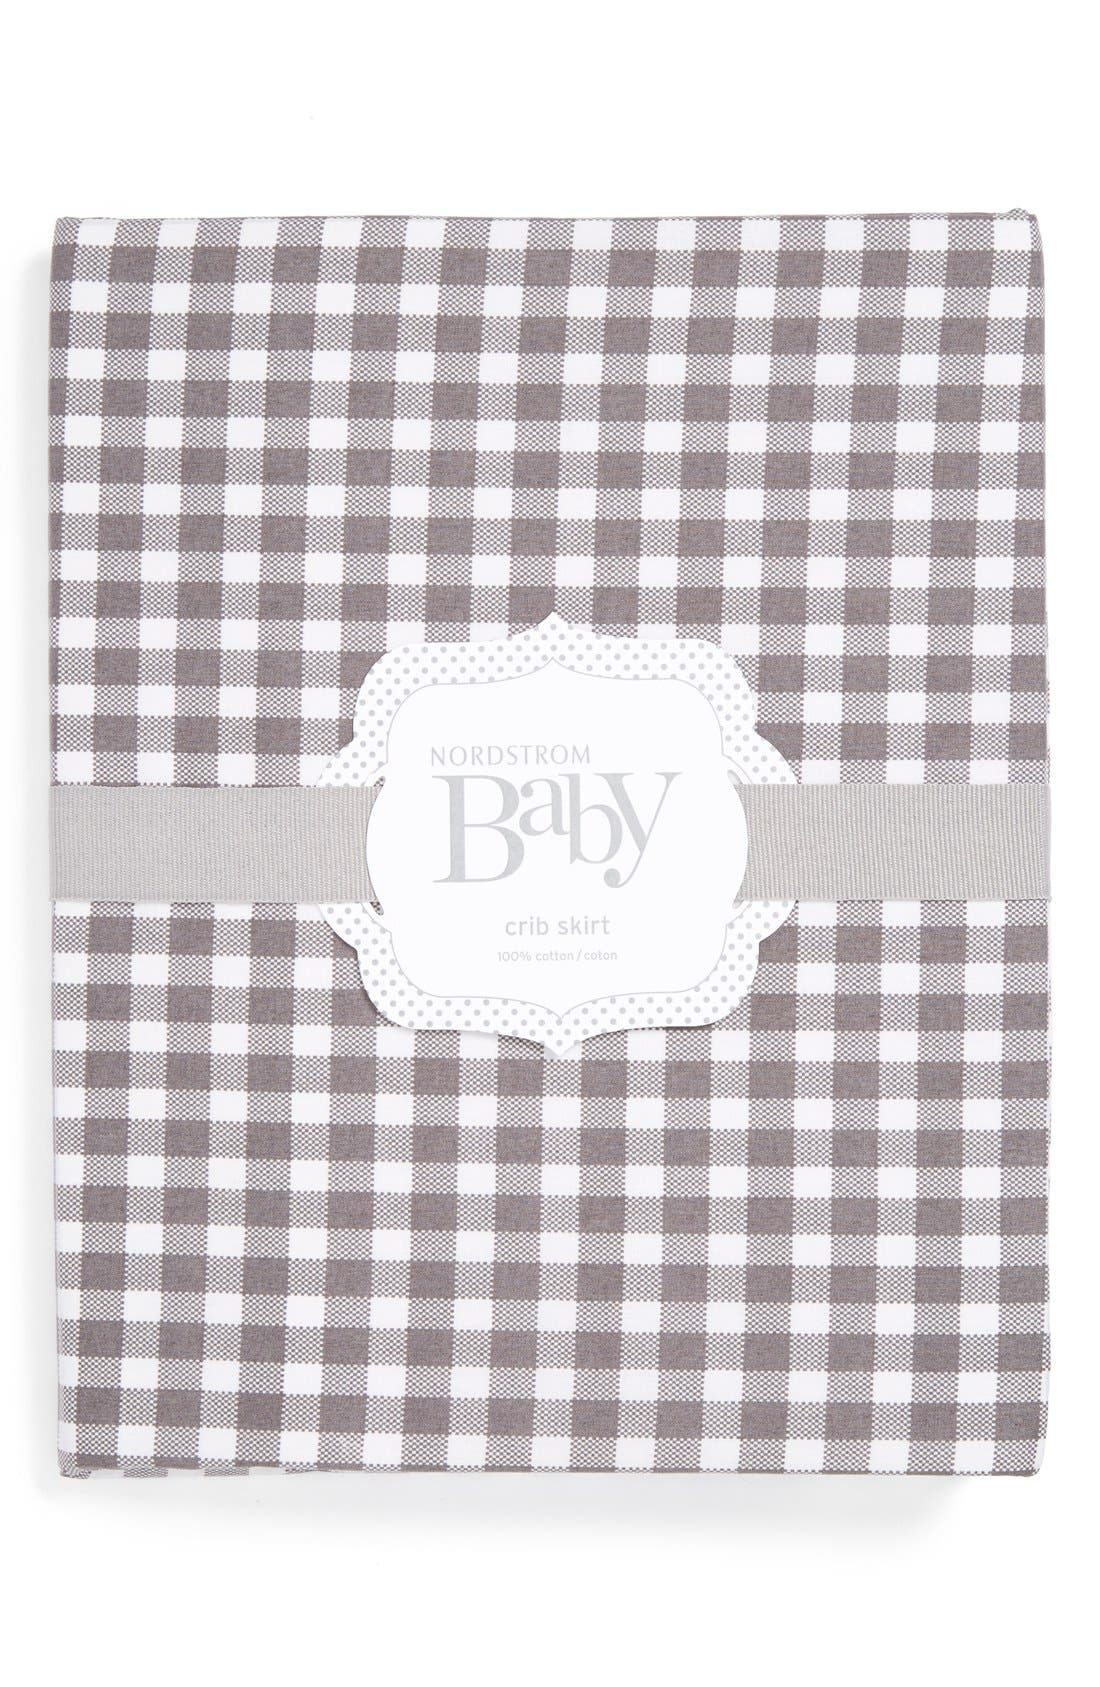 Nordstrom Baby Gingham Crib Skirt